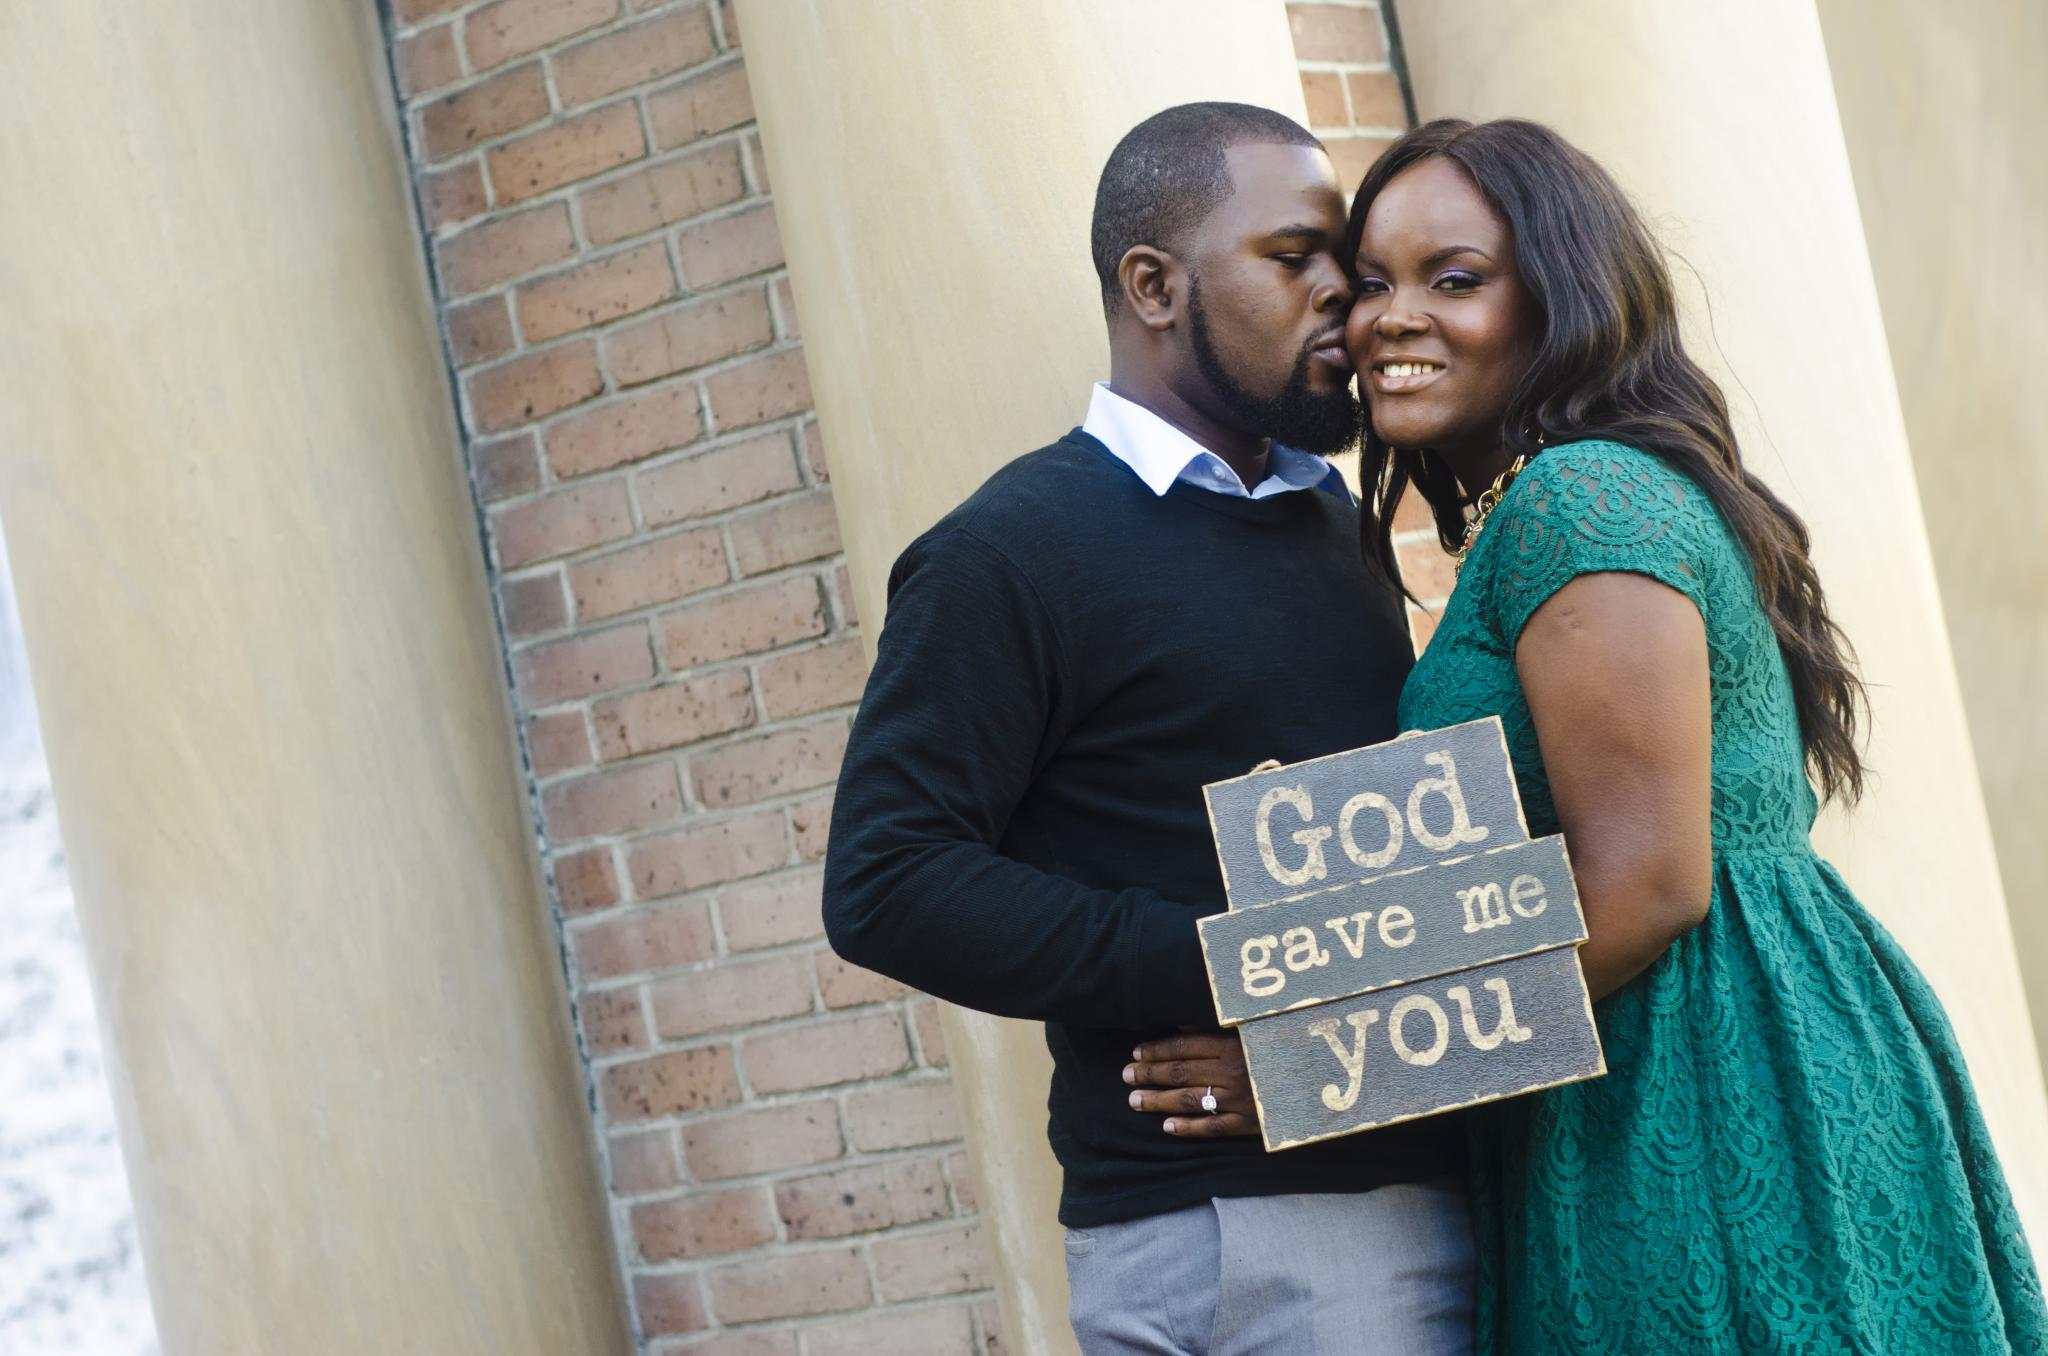 Just Engaged: They Found Love Through Fellowship